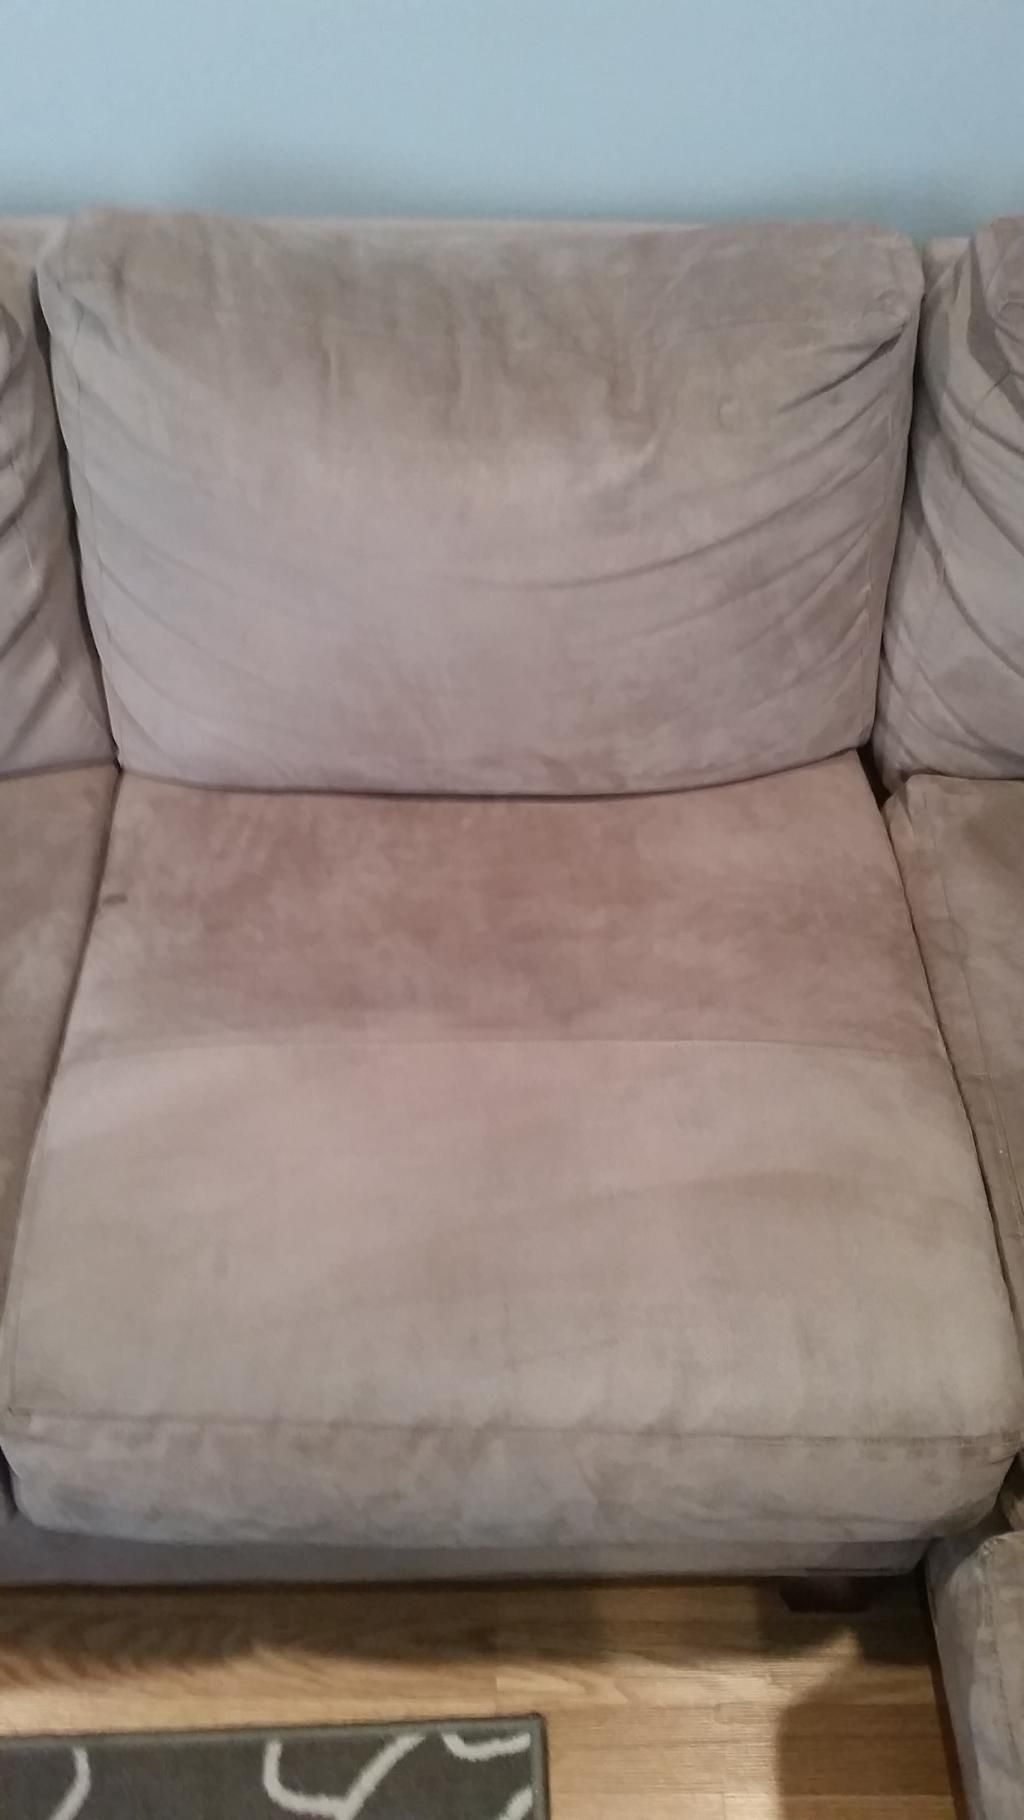 How To Clean Stains From A Microfiber Sofa Wooden Set Online Photo 20150108 131512 Zpsnplvt7du Jpeg Cleaning